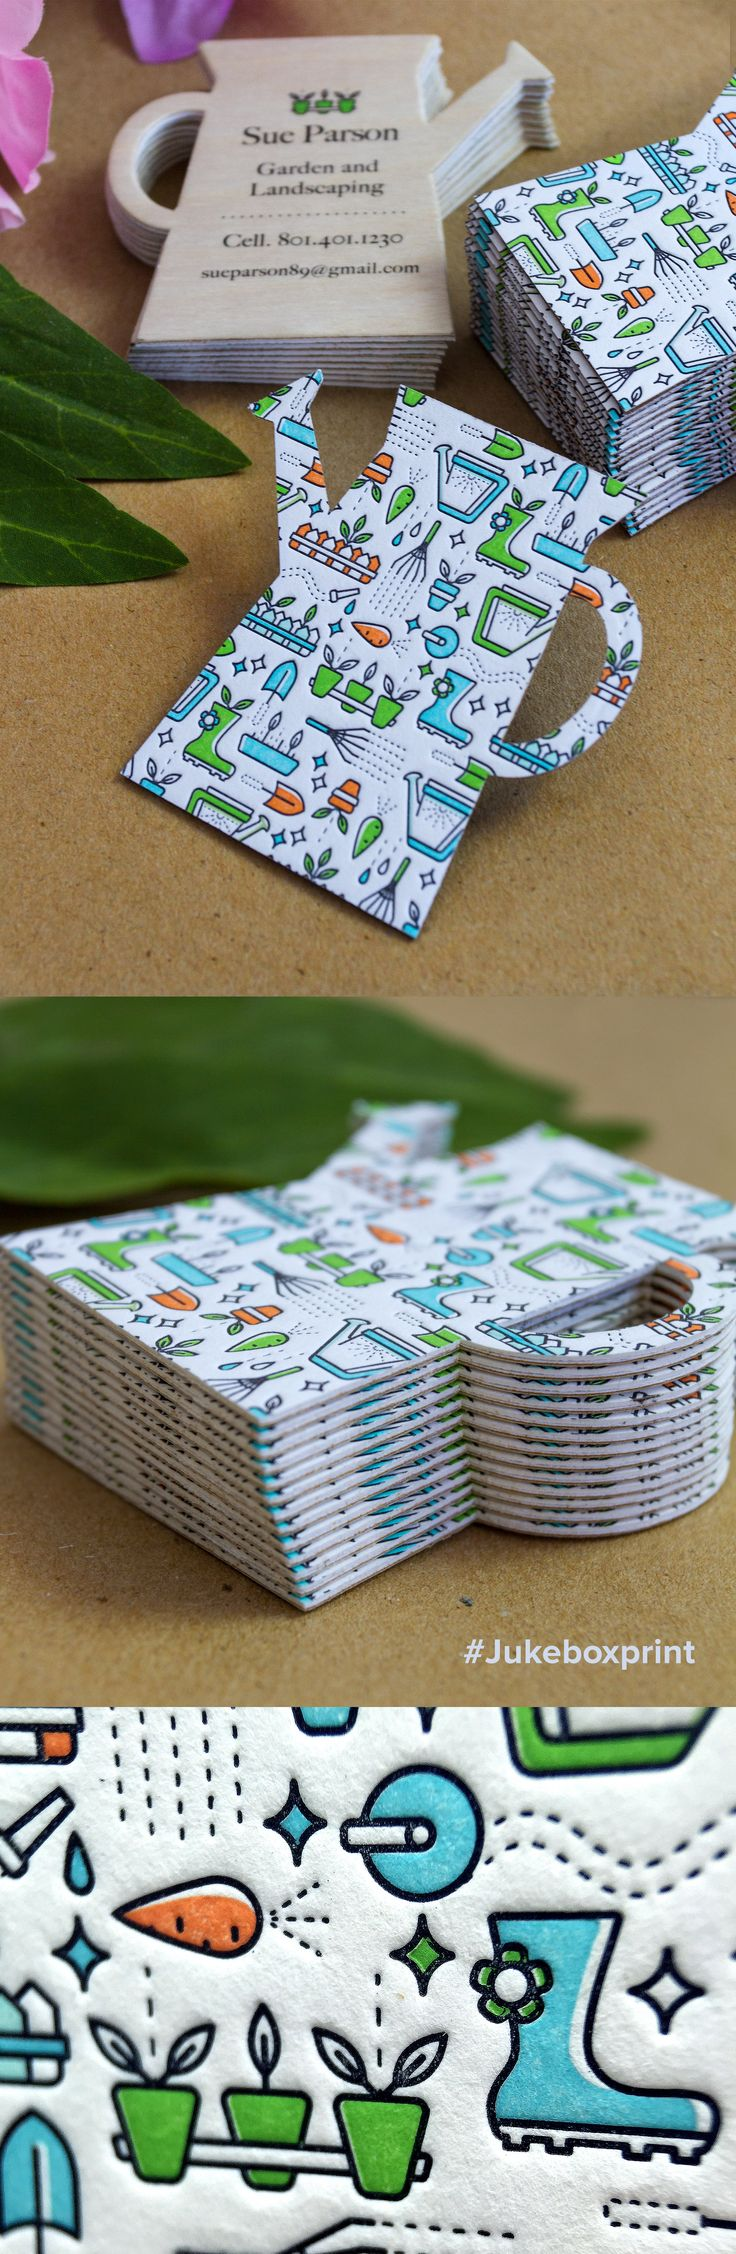 Adorable custom shaped Letterpress Business Cards printed on Cotton and Natural Wood Backing. Produced by Jukebox Print.